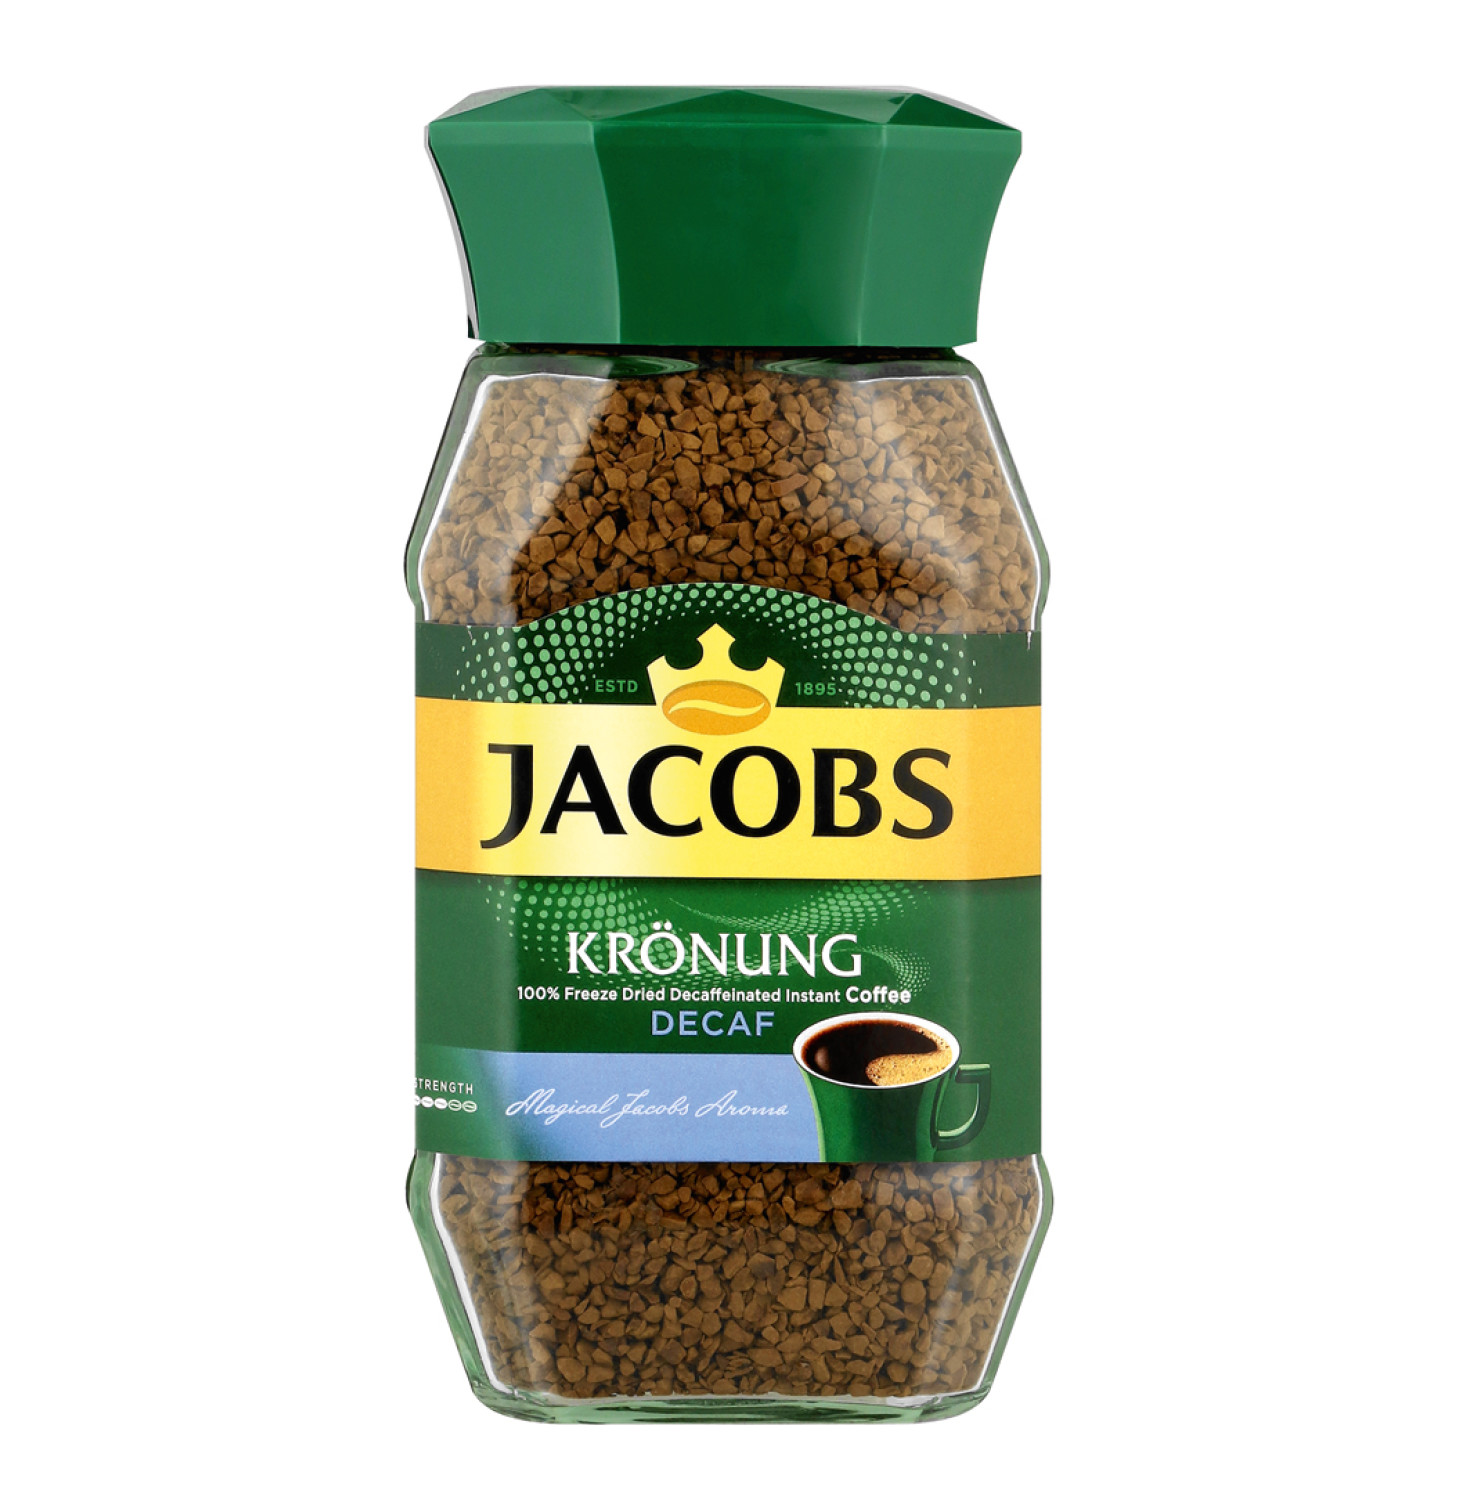 Jacobs Kronung Decaff Night & Day (1 x 200g)